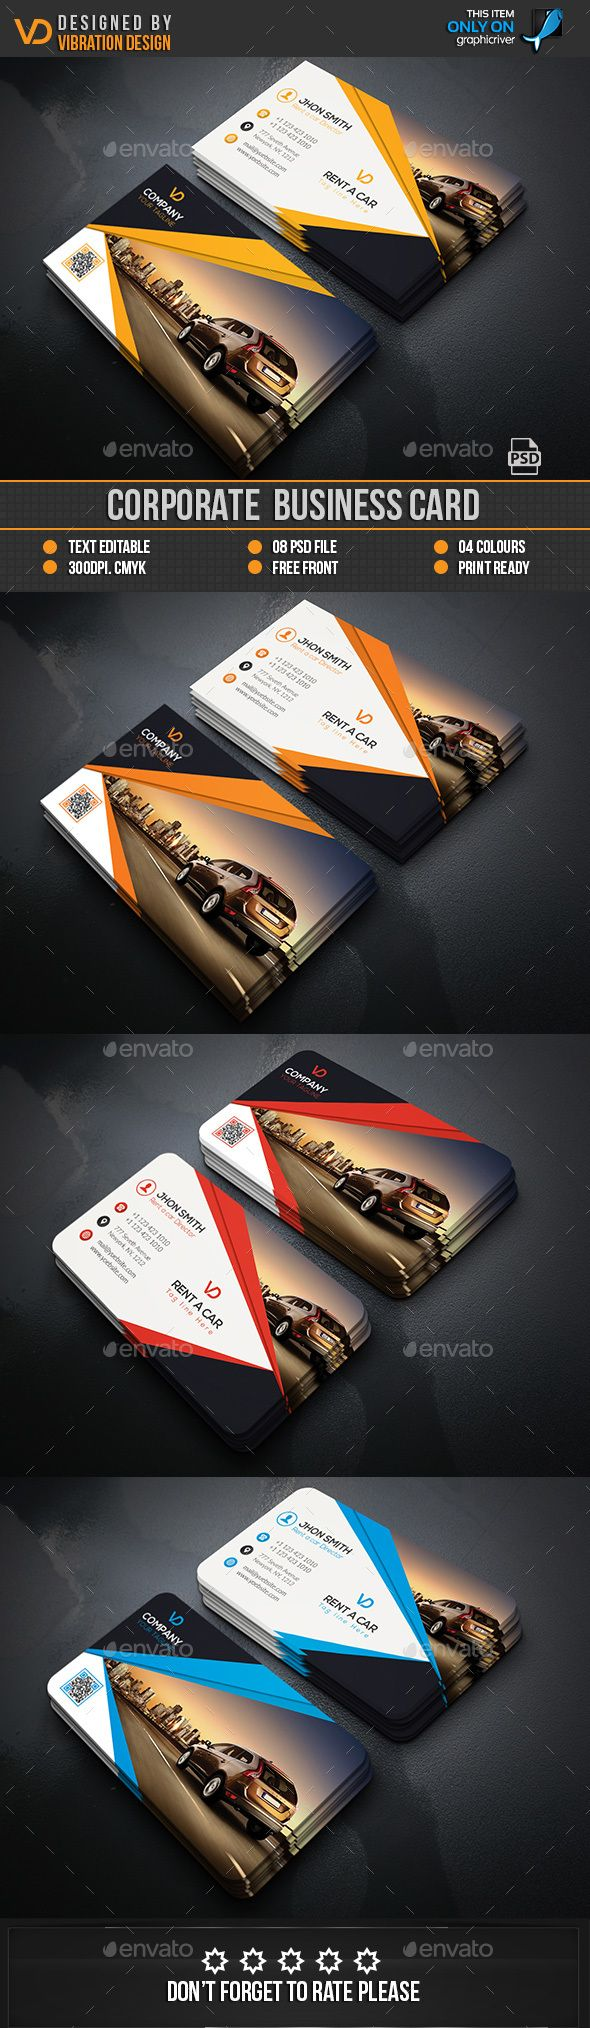 Rent a Car Business Card — Photoshop PSD #white #package • Available ...